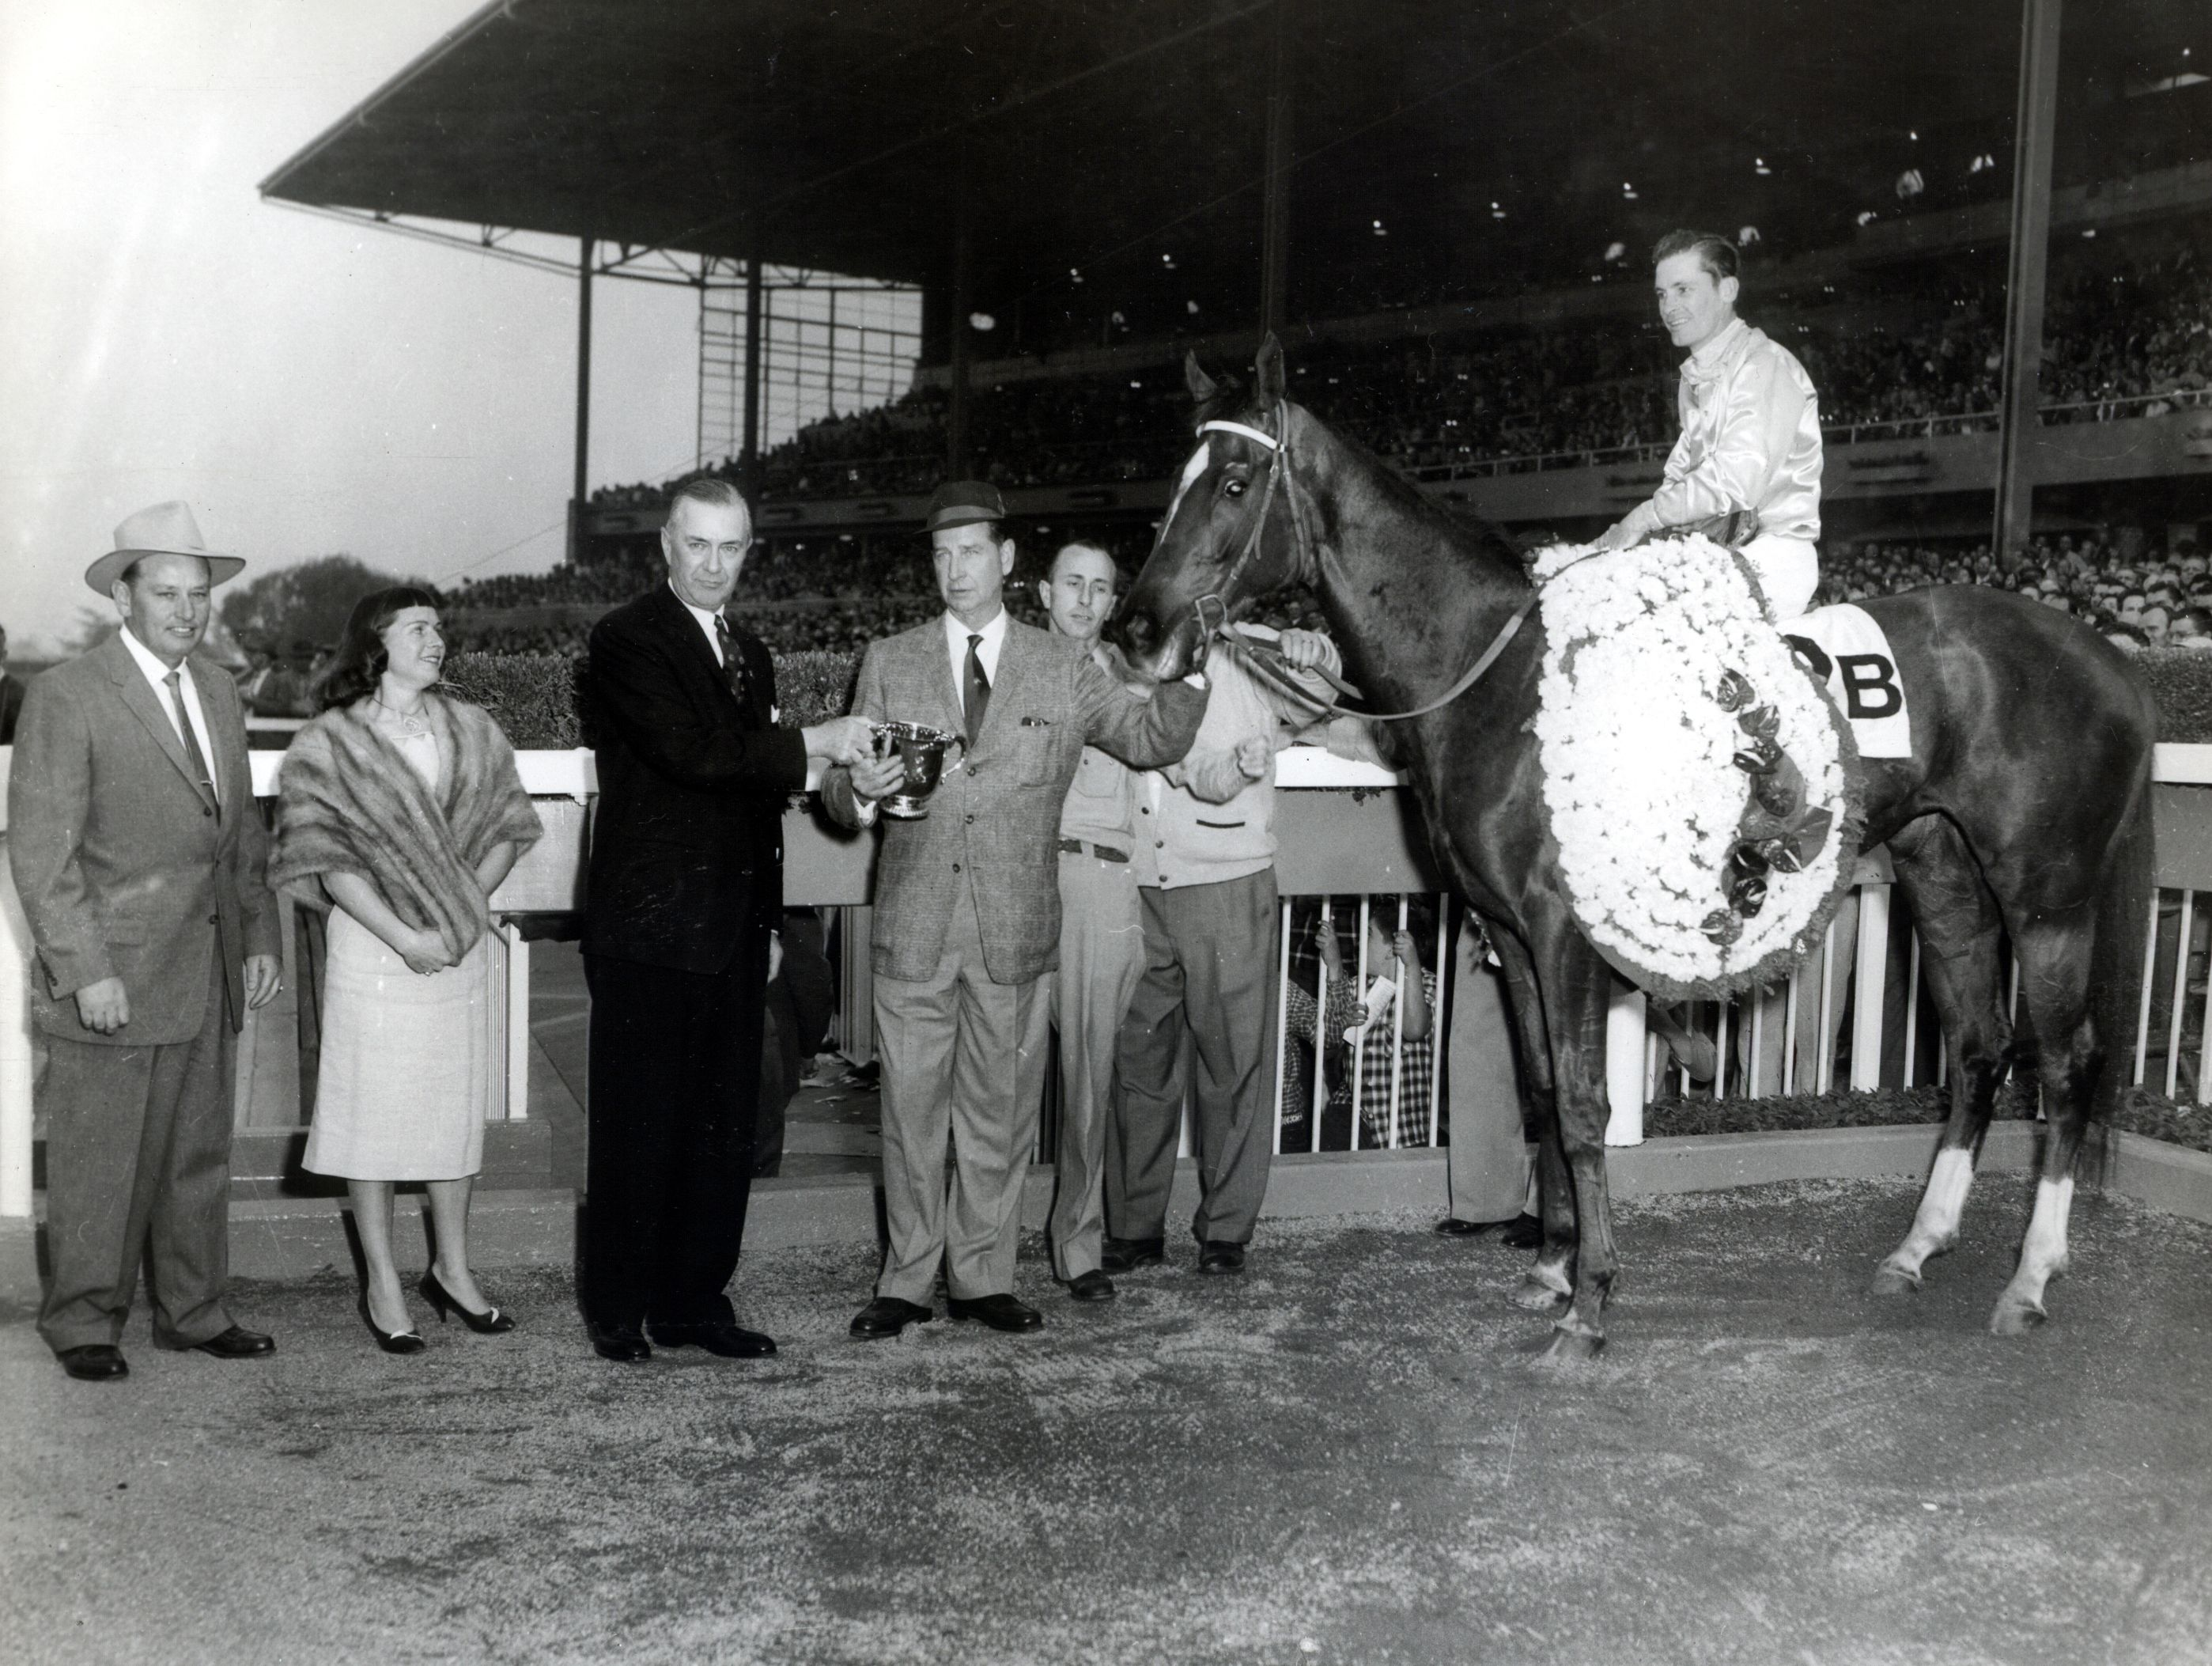 Silver Spoon (Raymond York up) in the winner's circle for the 1959 Santa Anita Derby (Museum Collection)